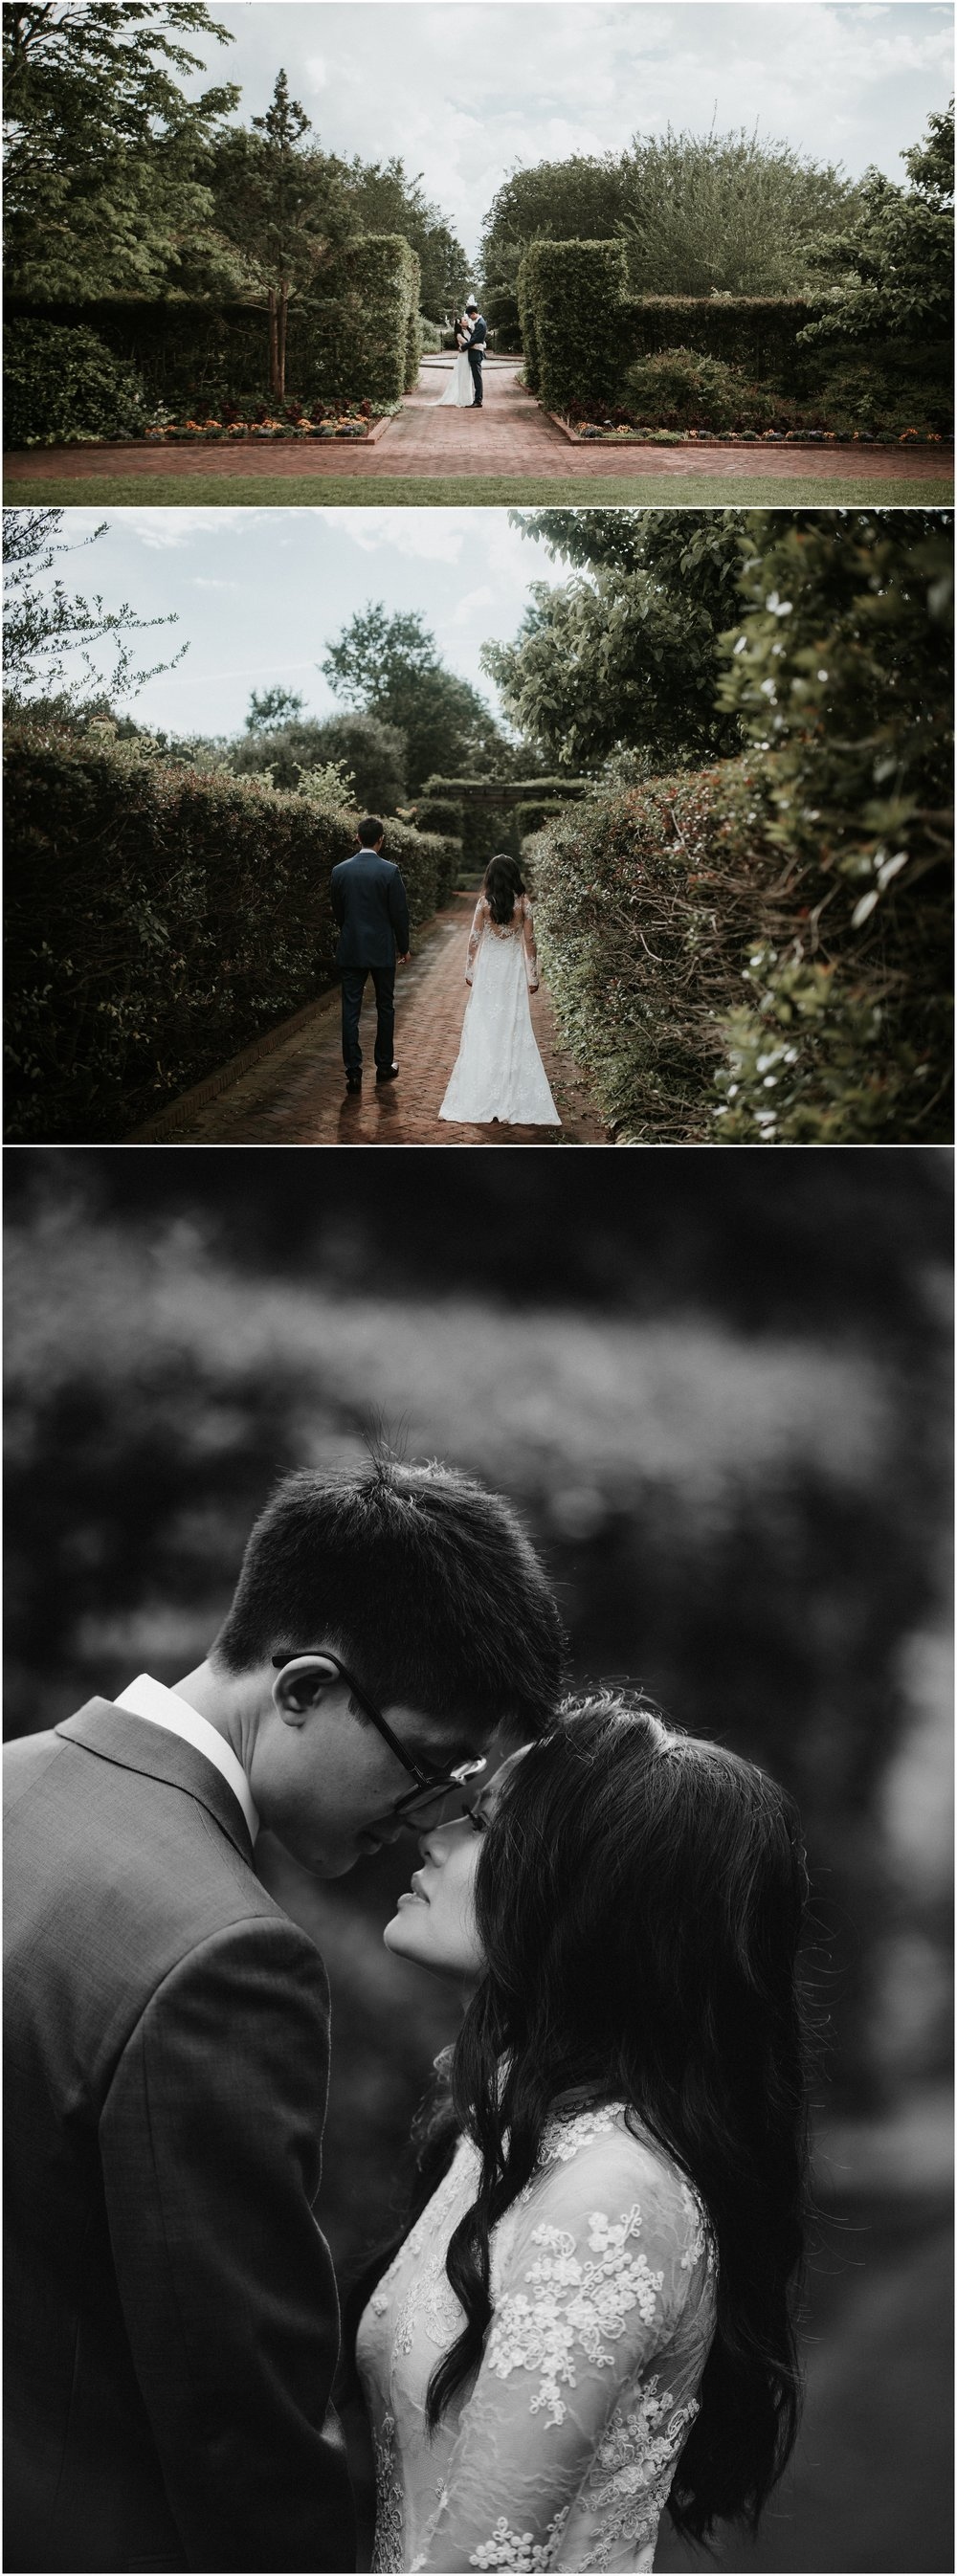 Daniel-Stowe-weddings-avonne-photography42.JPG